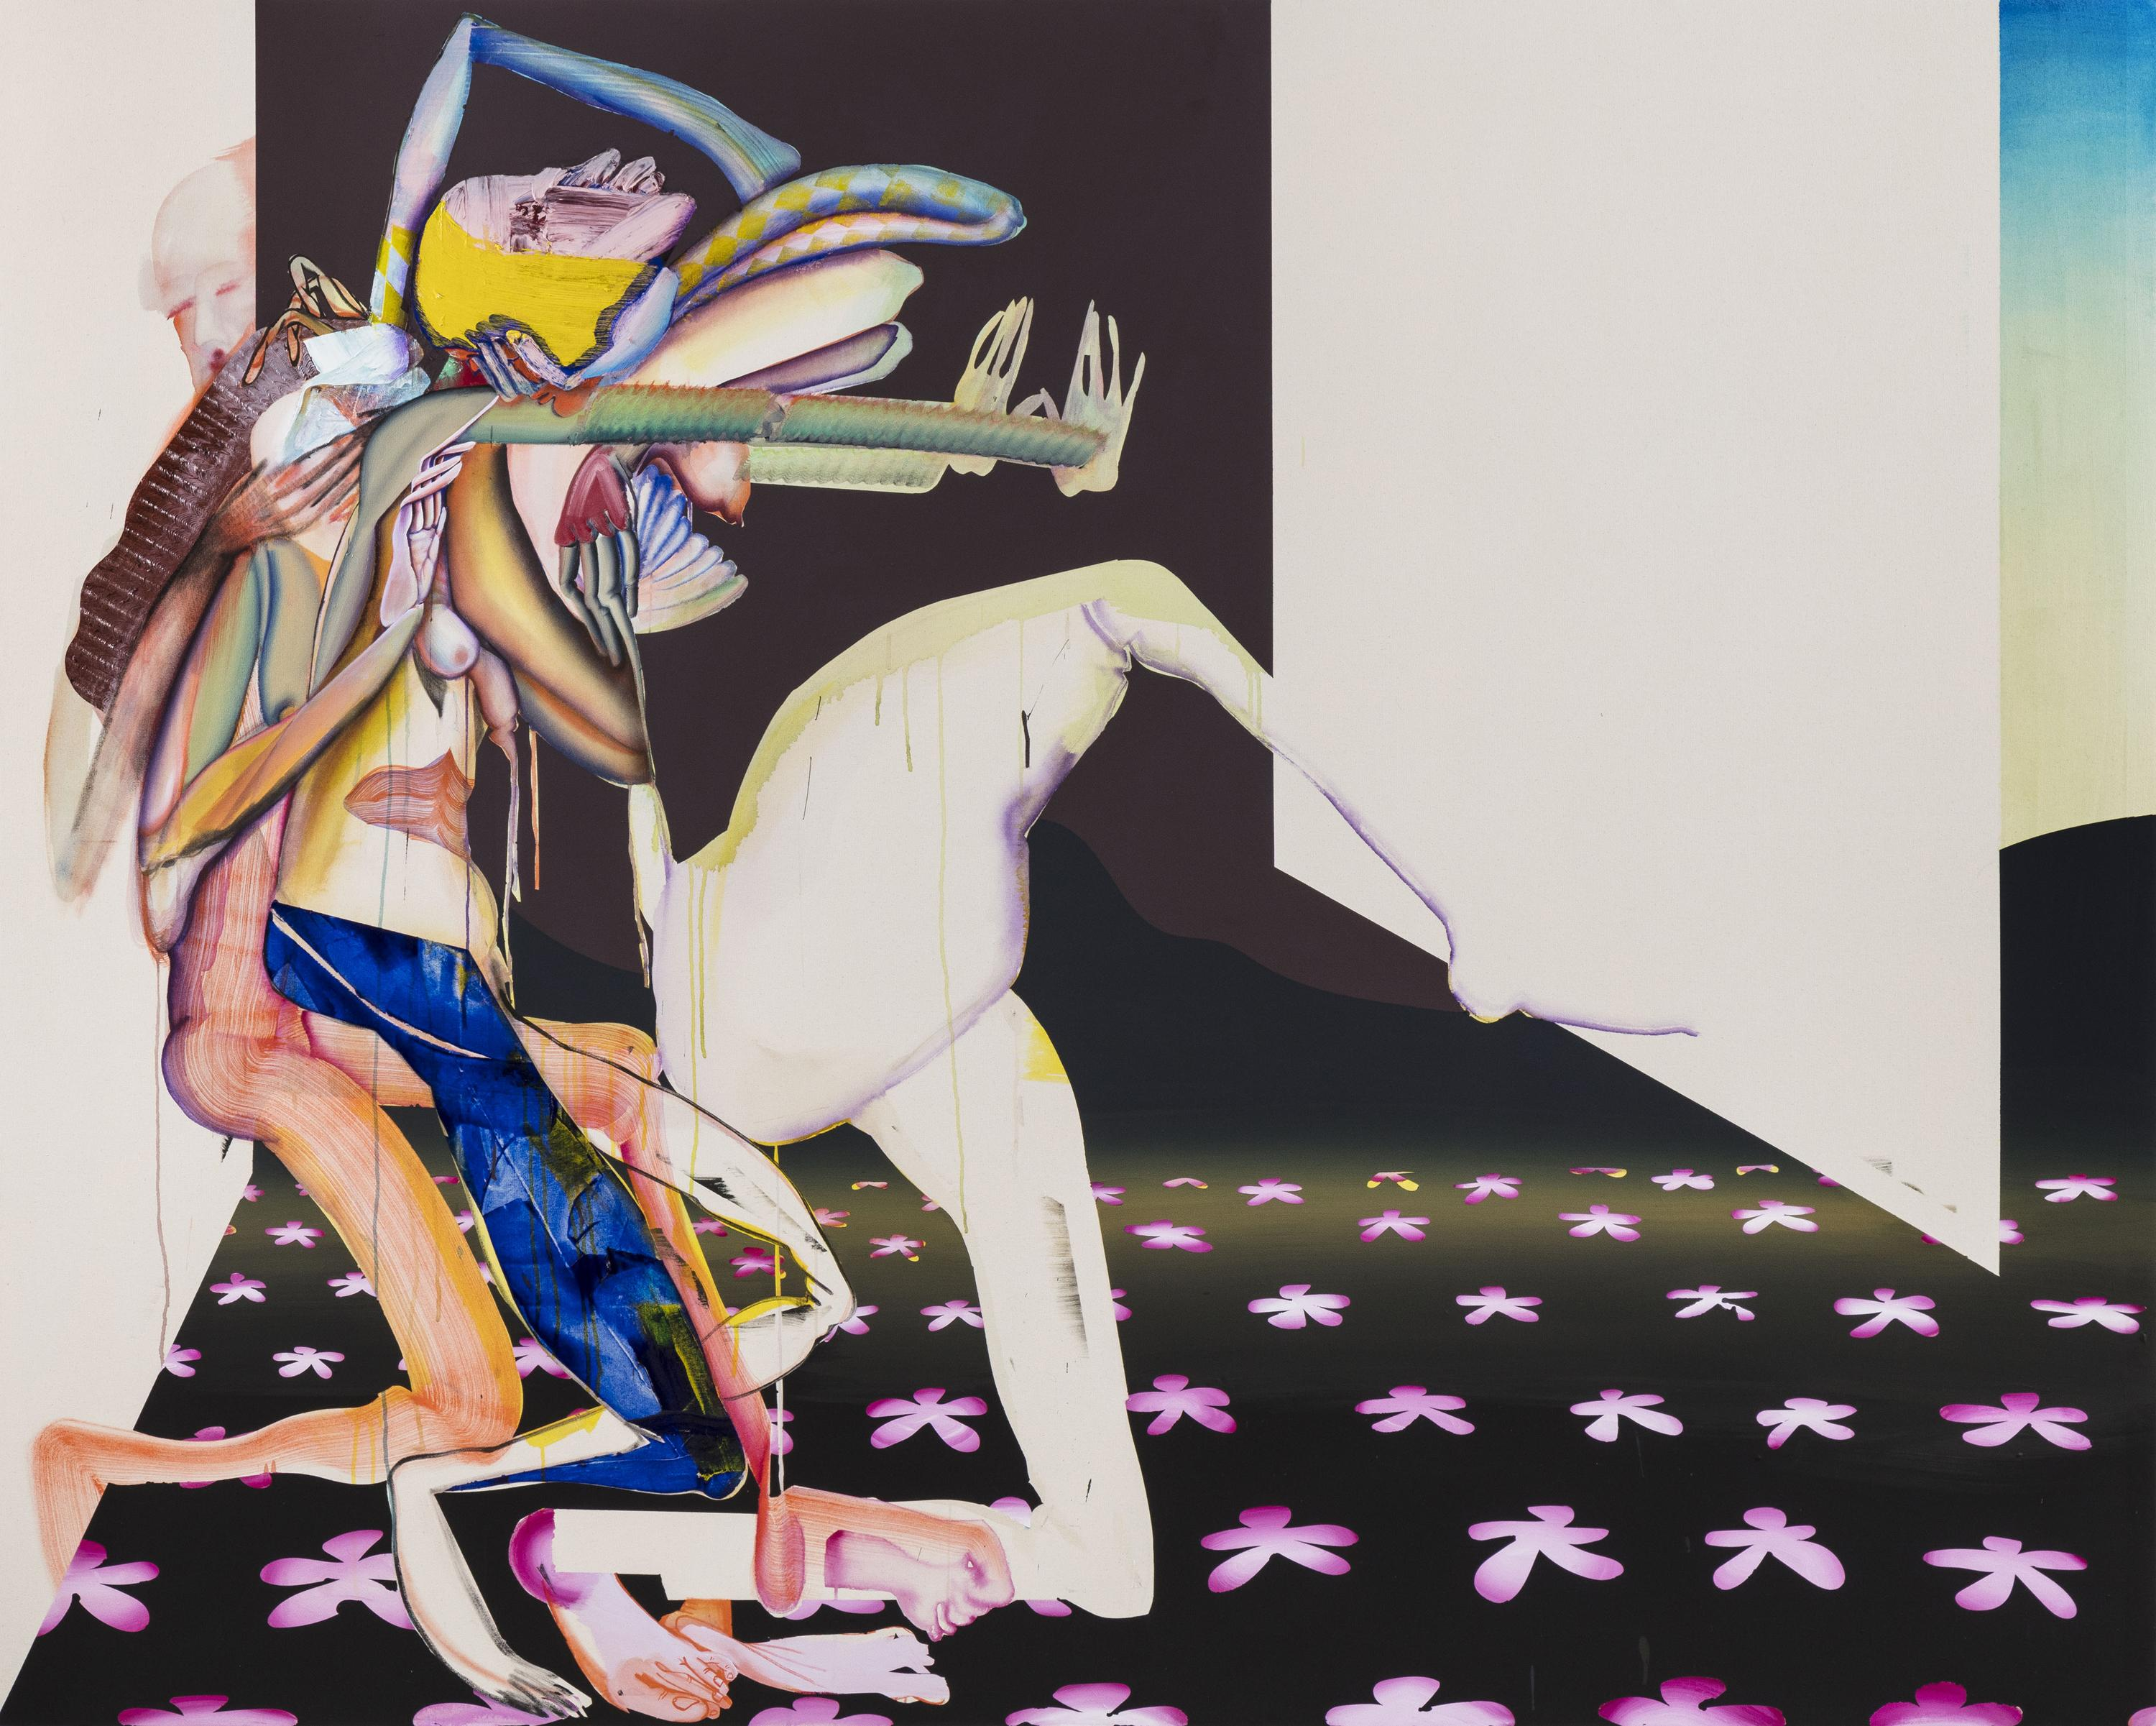 A dynamic composition of many colors and patterns shows two humanoid figures that are complexly intertwined.